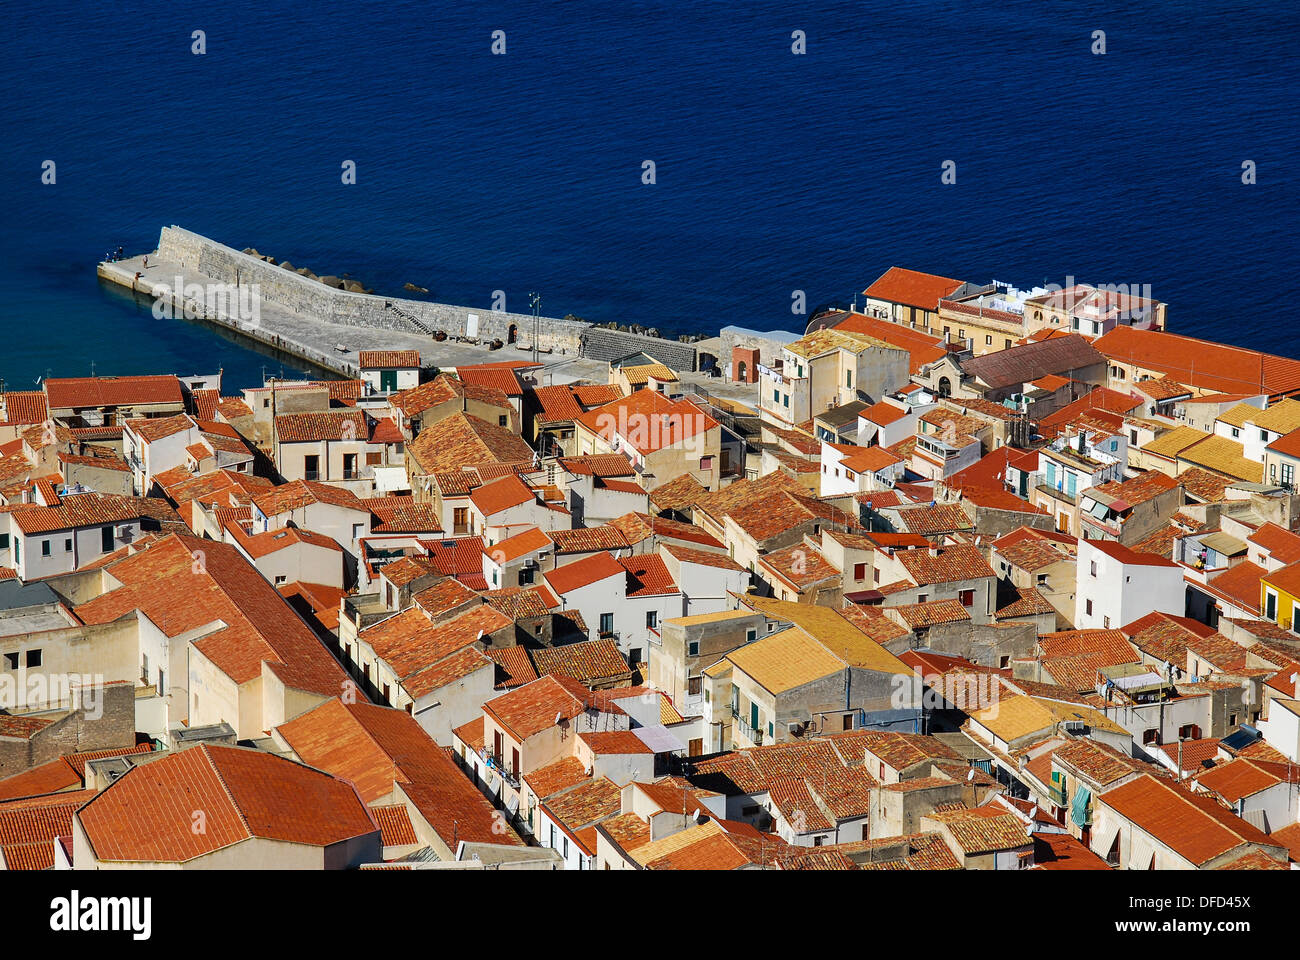 Cefalu, medieval city from Tyrrhenian Sea coast, Italy, famous place in Sicily. - Stock Image